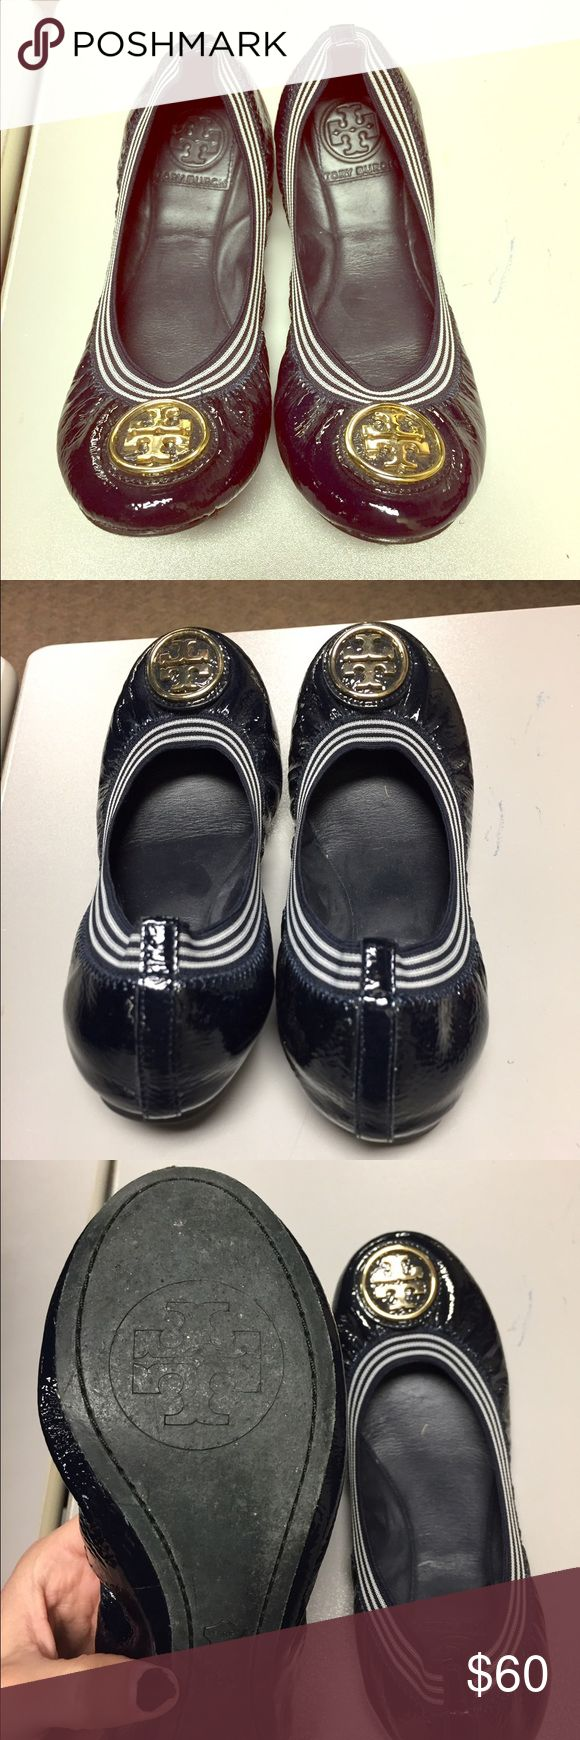 Tory burch flats Women's NAVY BLUE 6.5 Tory burch Caroline stripes ballerina flats. Been worn a few times good overall condition only sign of wear is the bottoms. Sold out online! Tory Burch Shoes Flats & Loafers